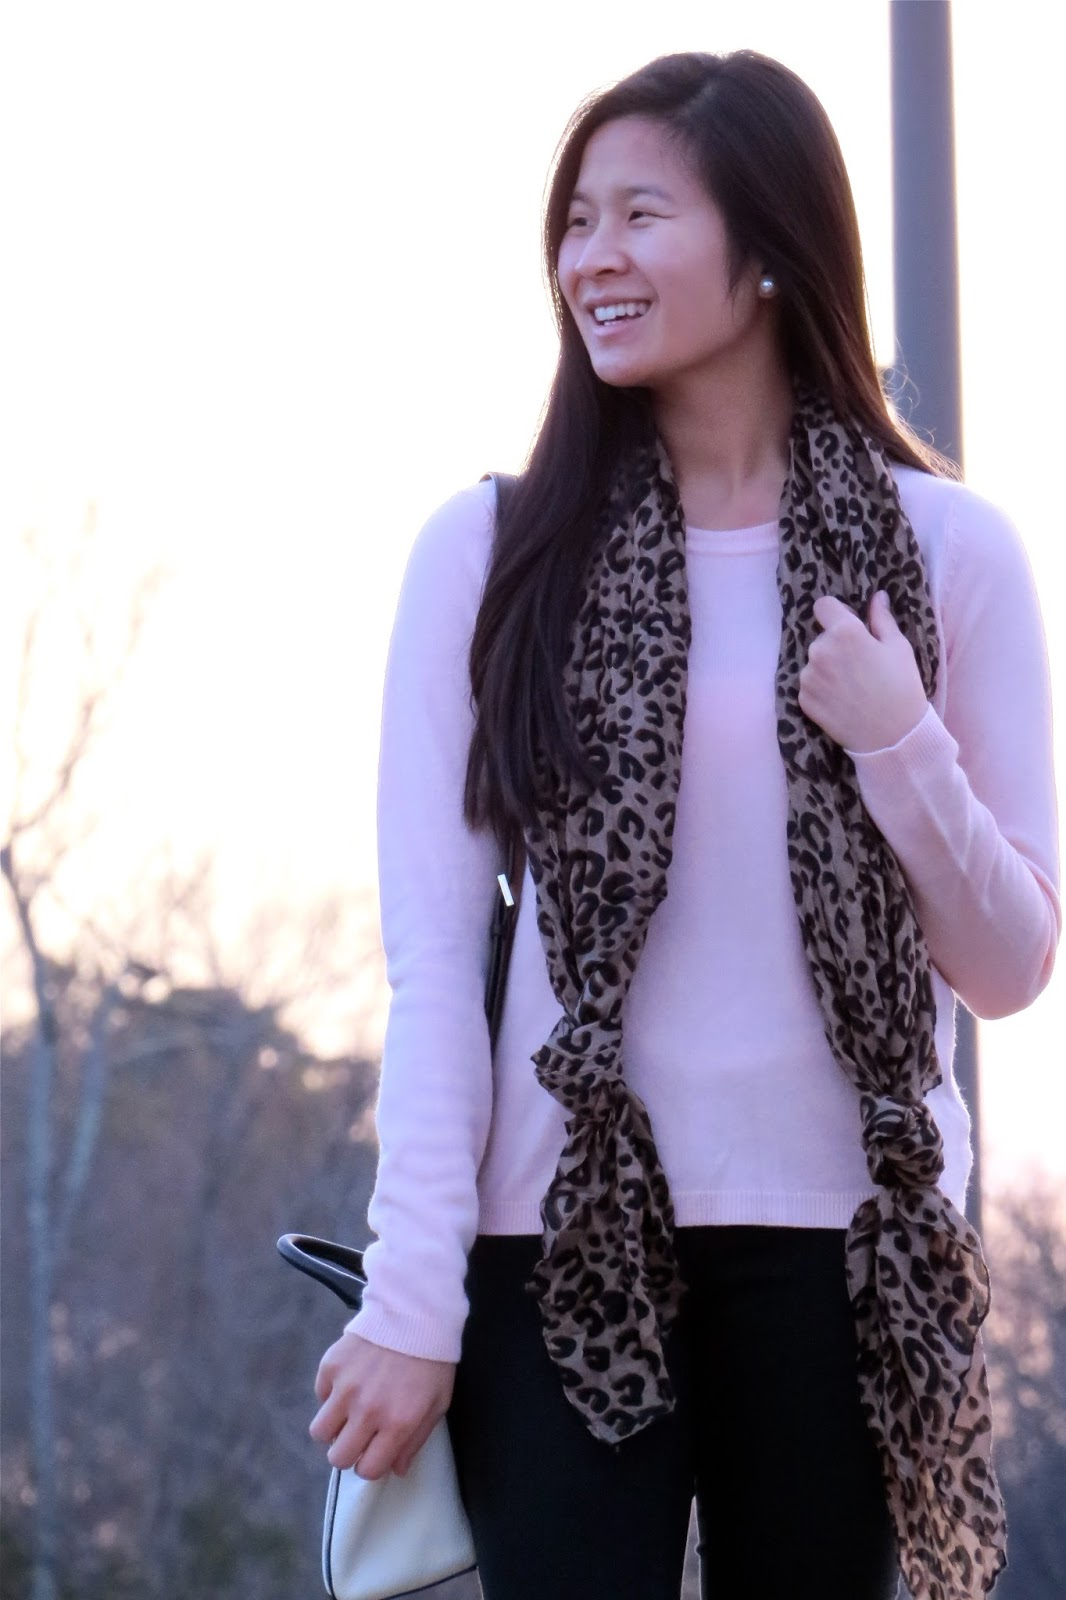 Casual_winter_date_night_outfit